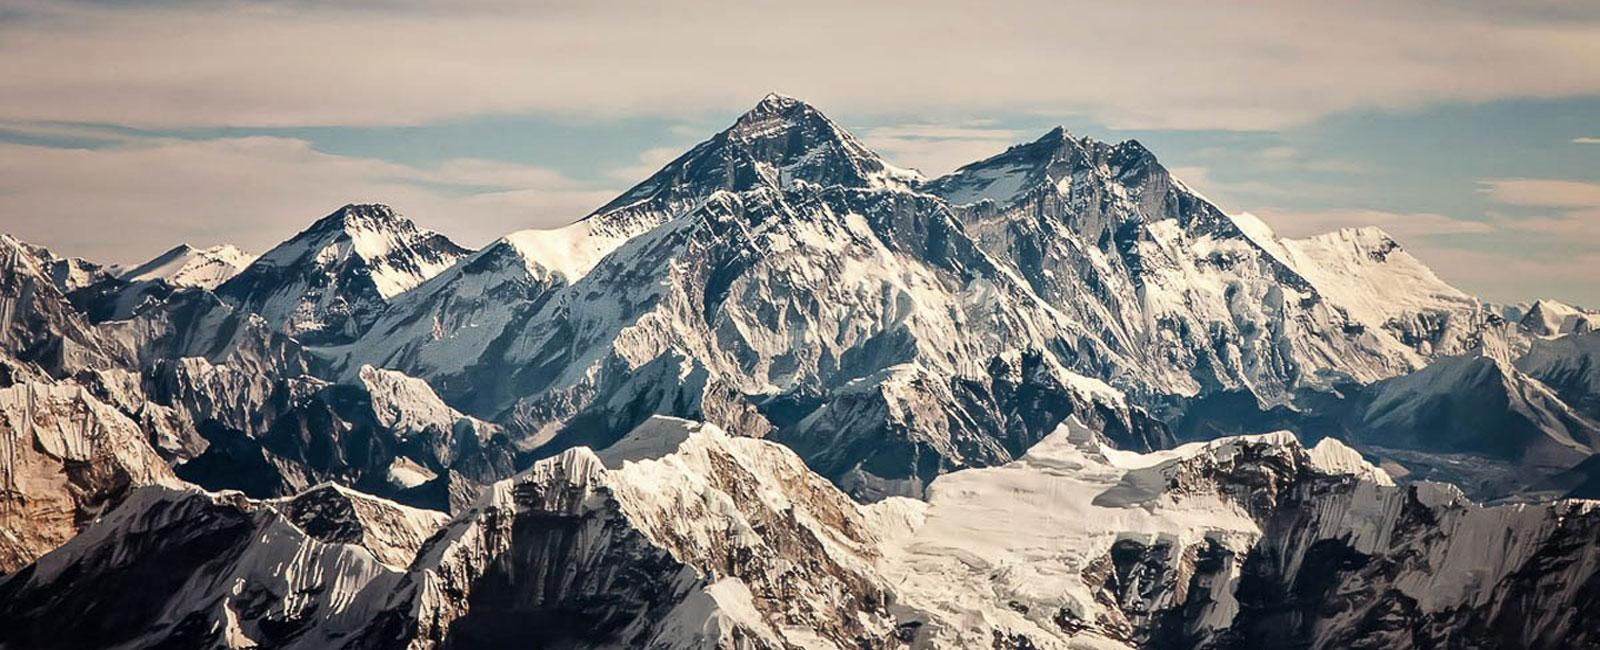 Everest Flight for the closest view of Mount Everest and Himalayas